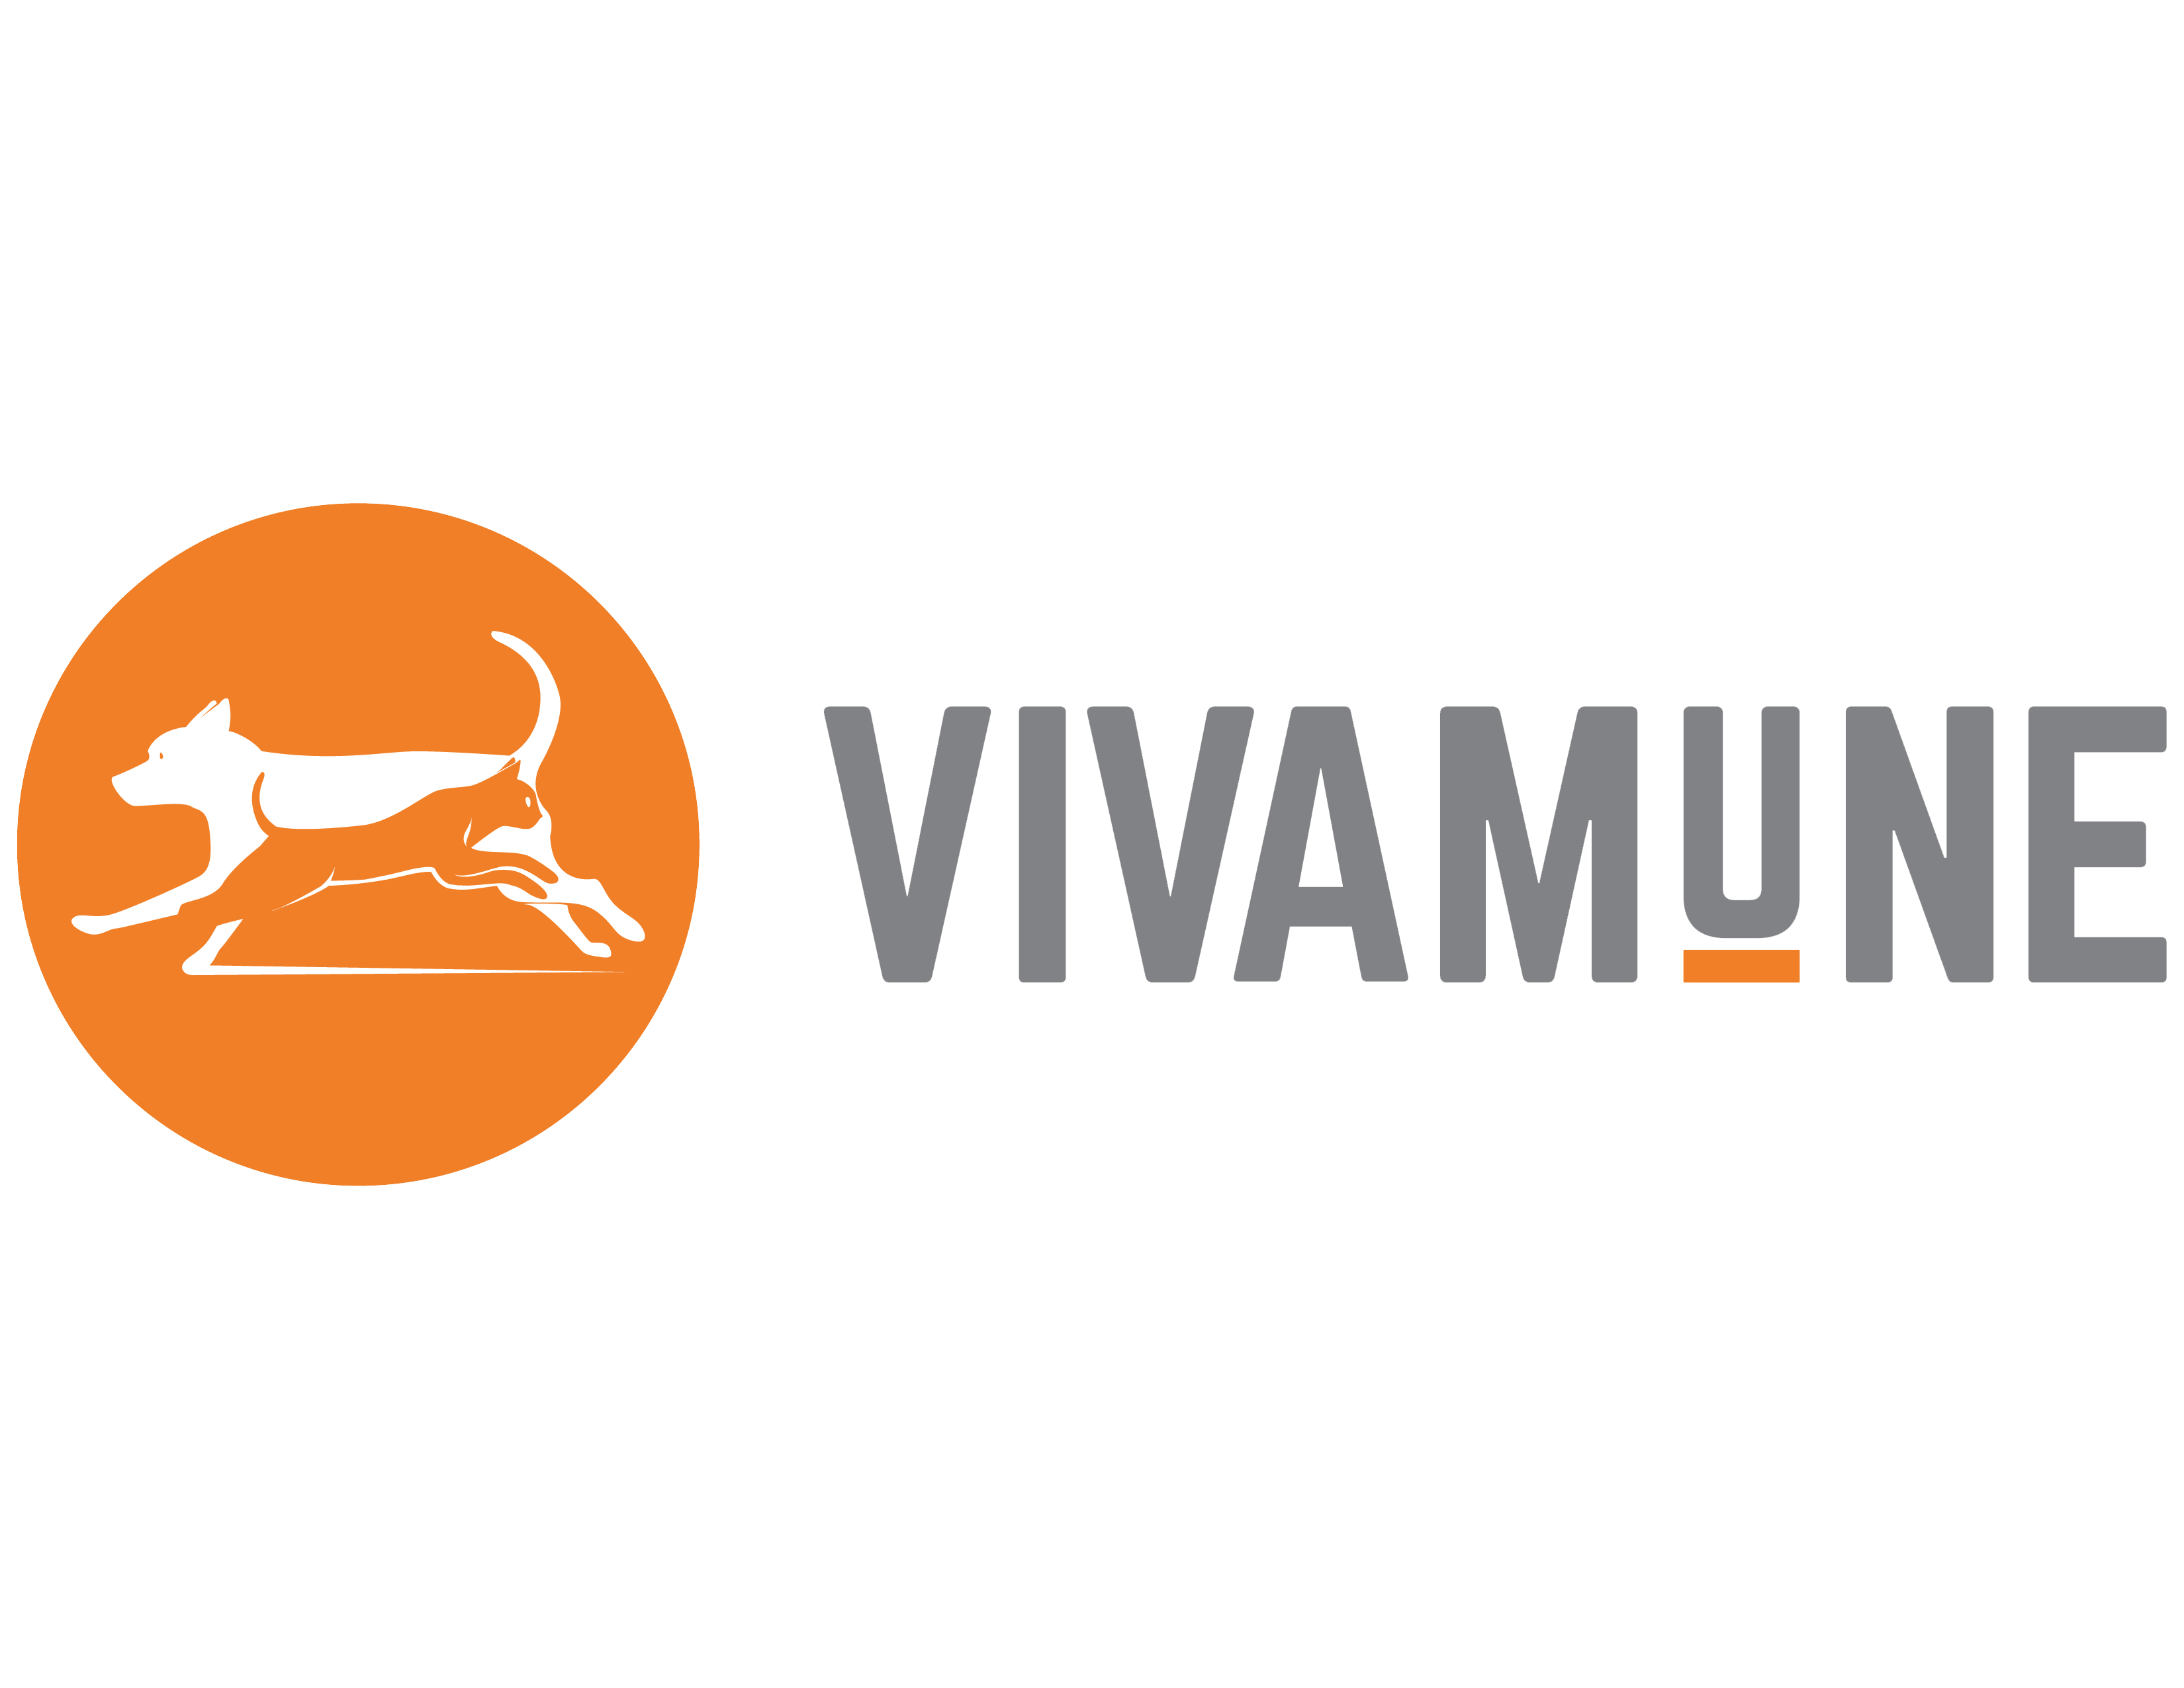 Vivamune logo on PePR.com